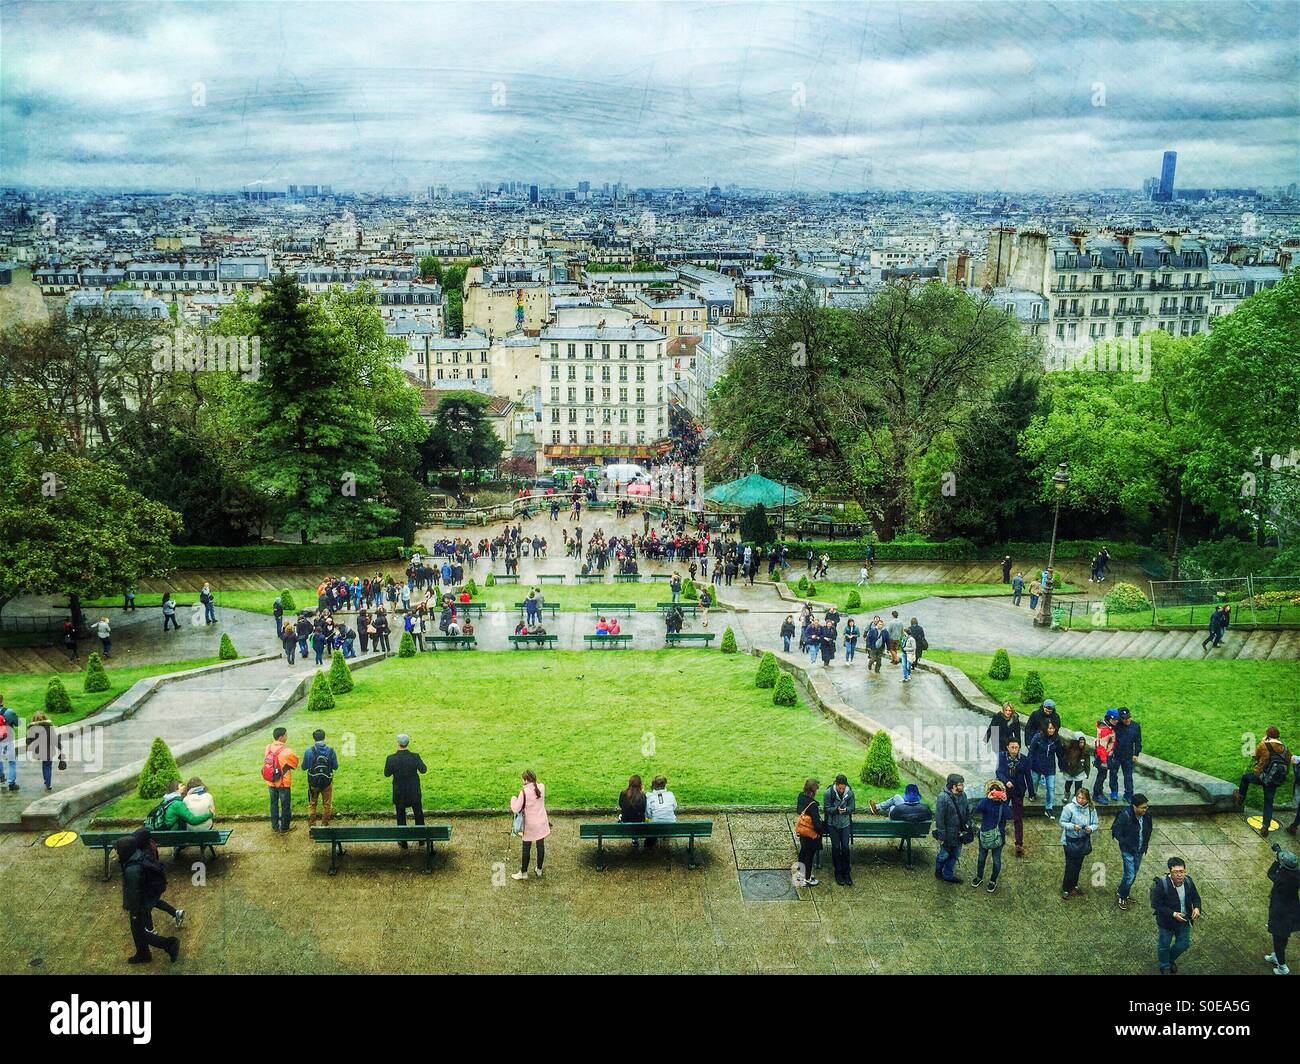 City day views of Paris in Spring as seen from Montmarte hill in France. Tourists in foreground, Montparnasse Tower Stock Photo